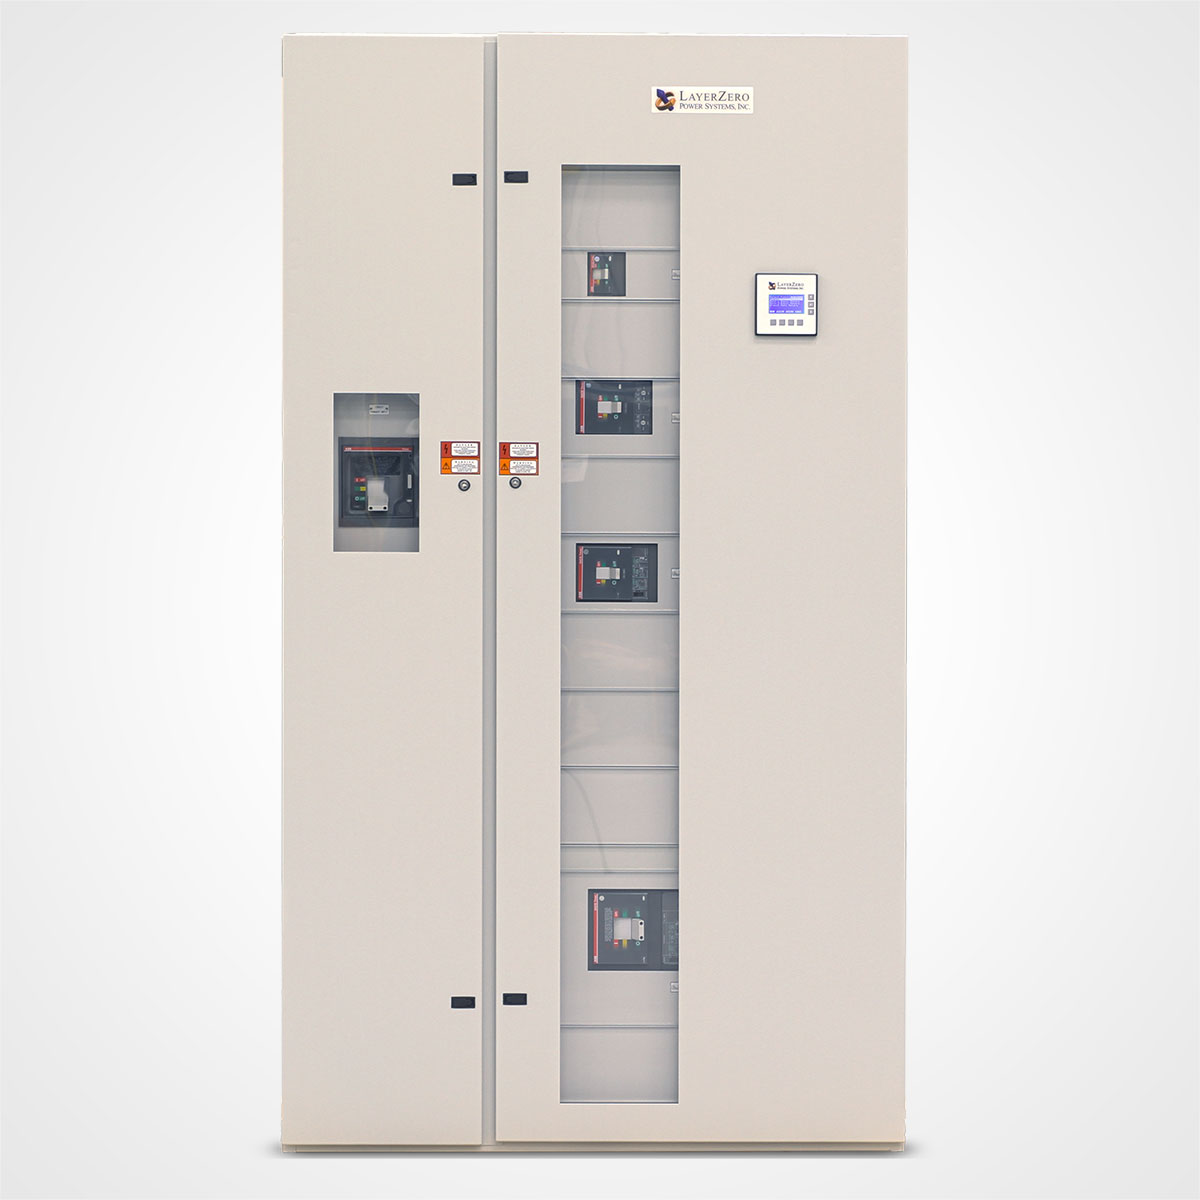 The LayerZero Series 70: eRDP Remote Distribution Panel.